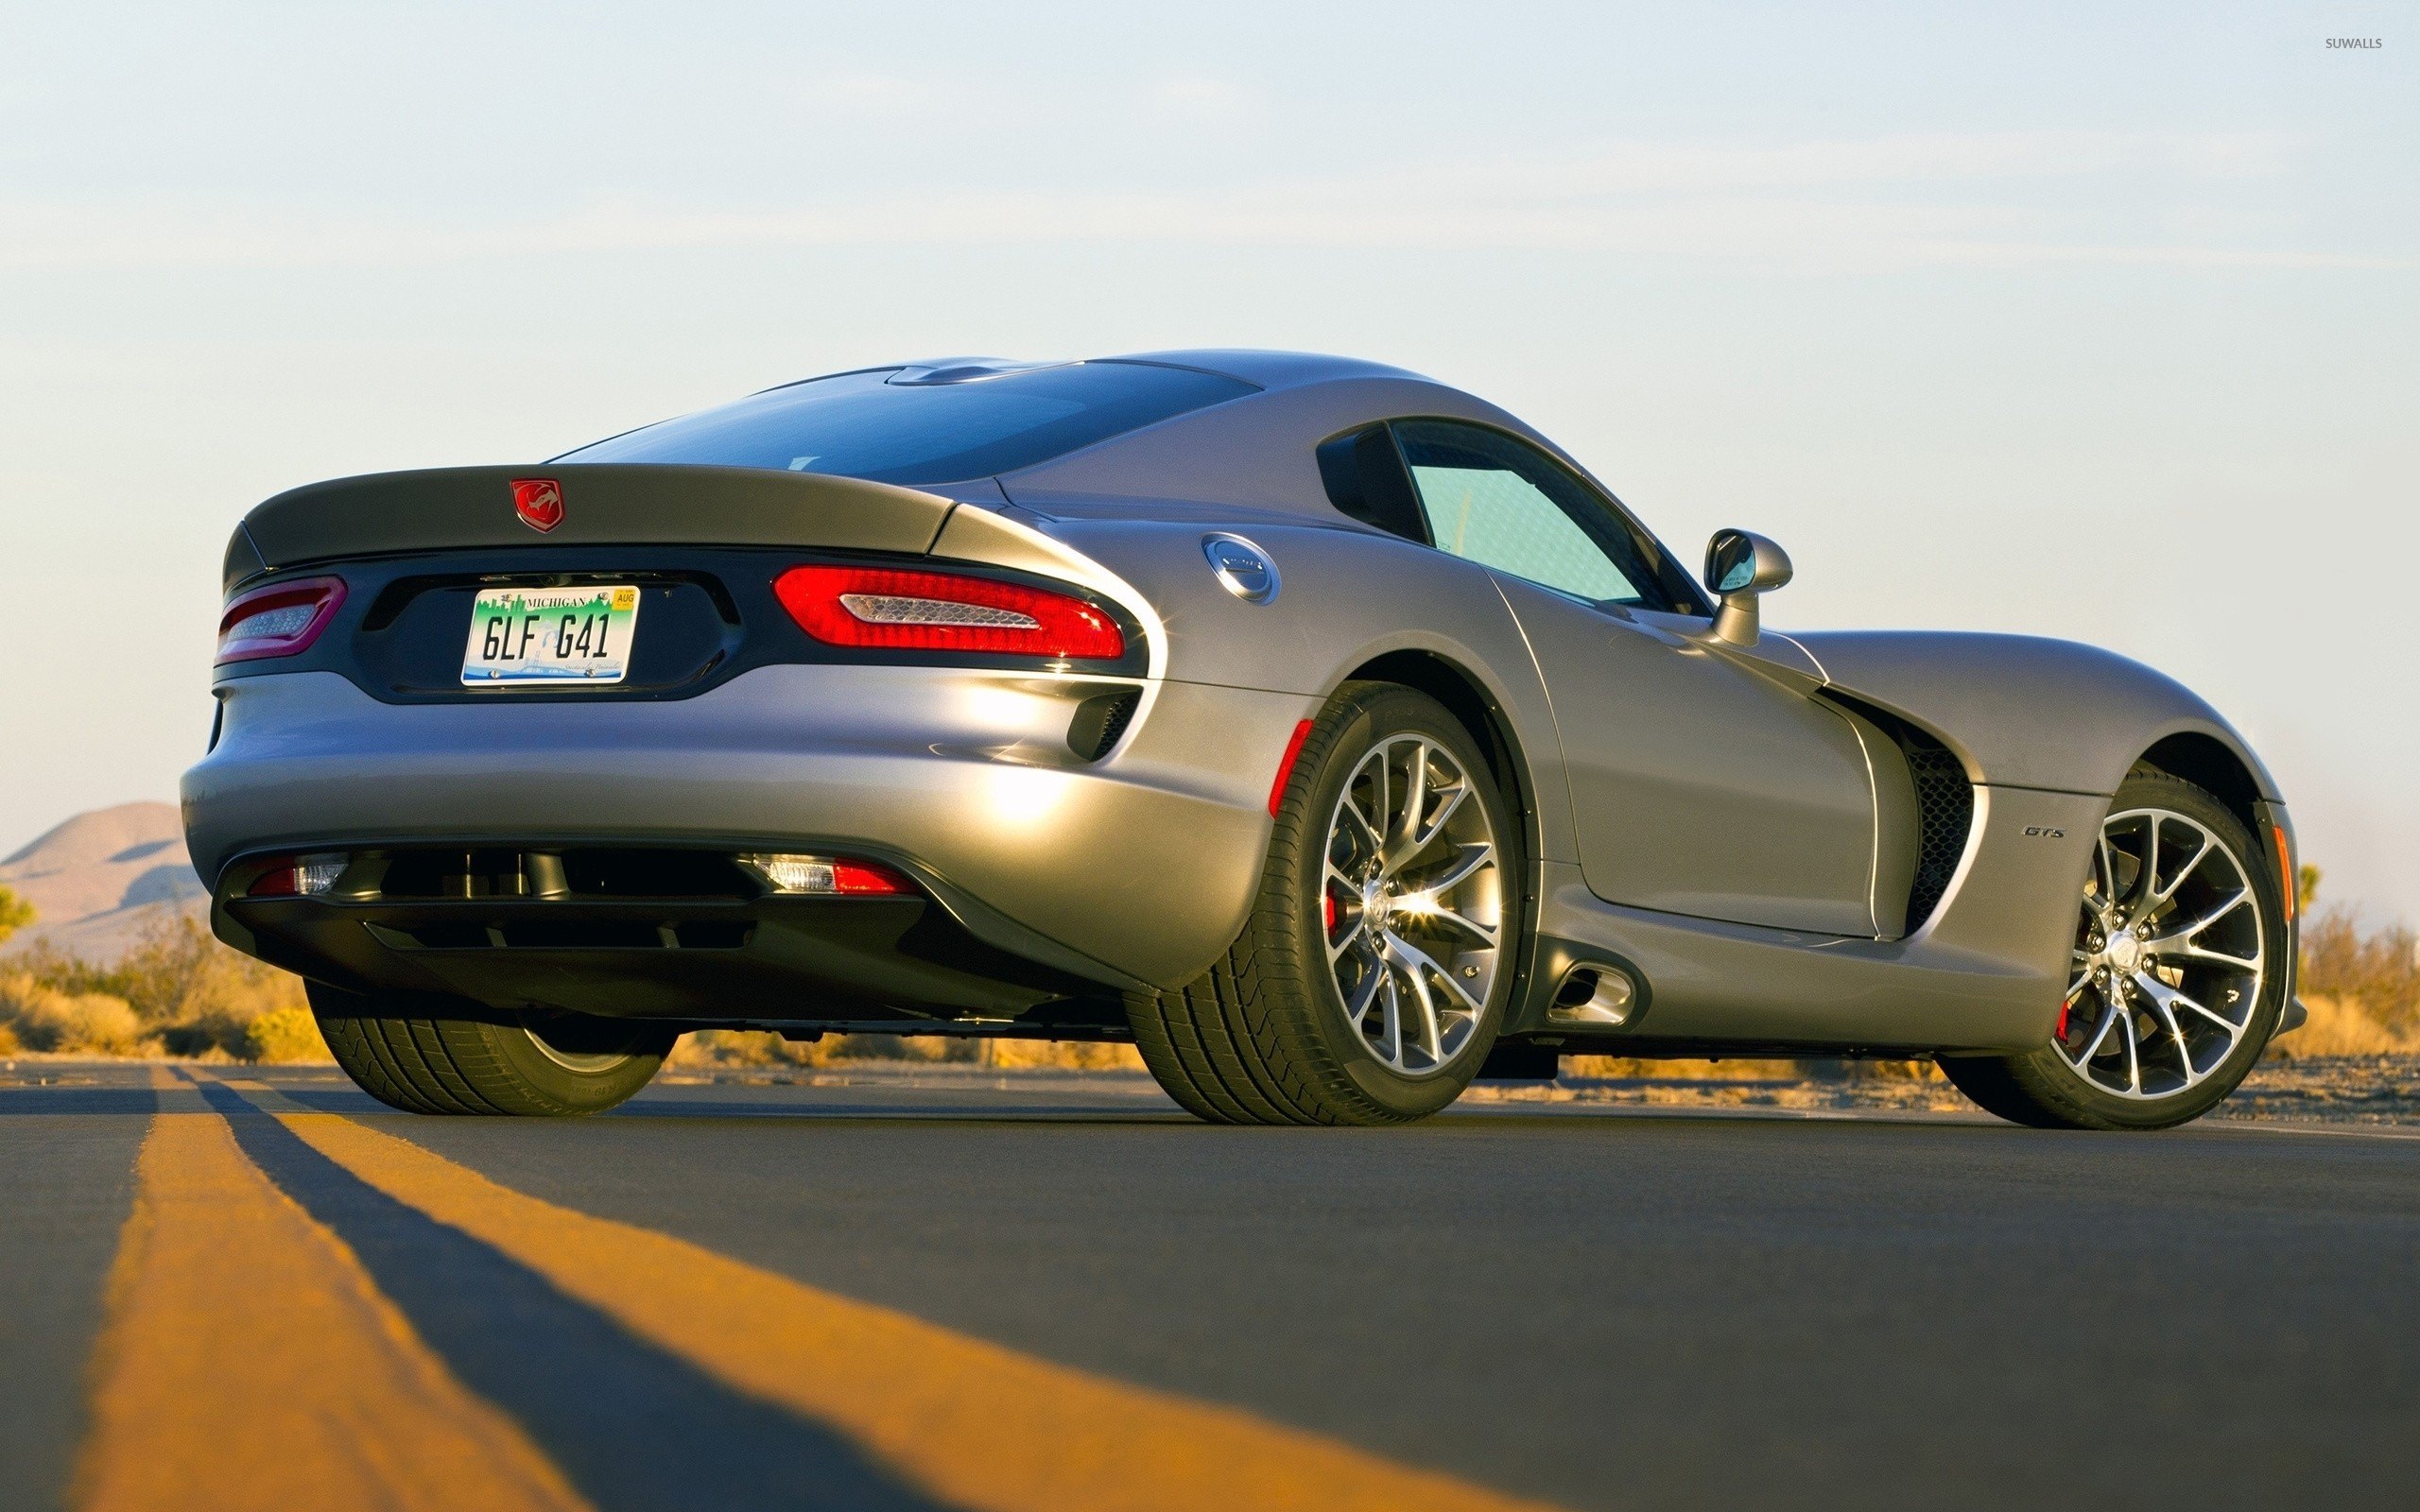 Back side view of a Dodge Viper GTS wallpaper jpg